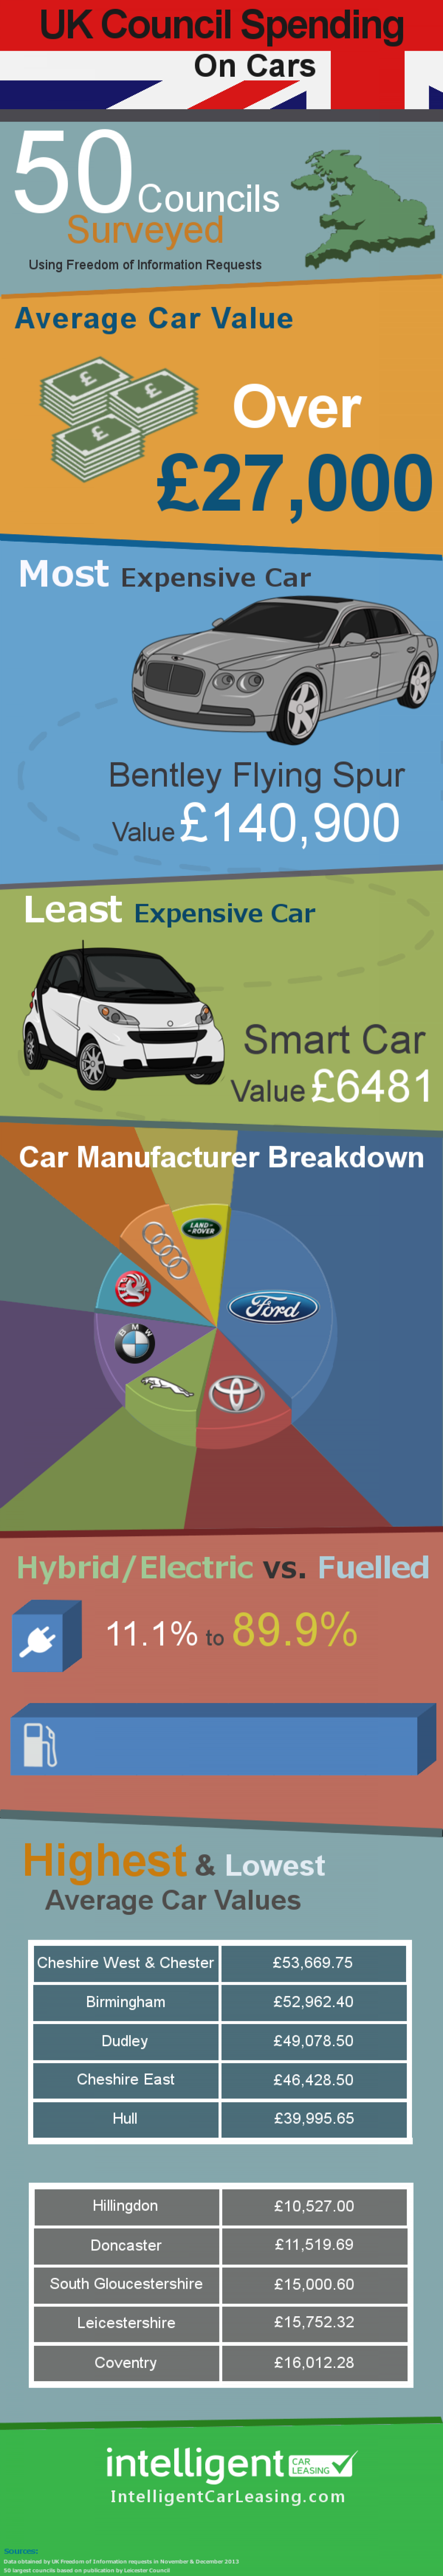 UK Council Spending on Cars Infographic